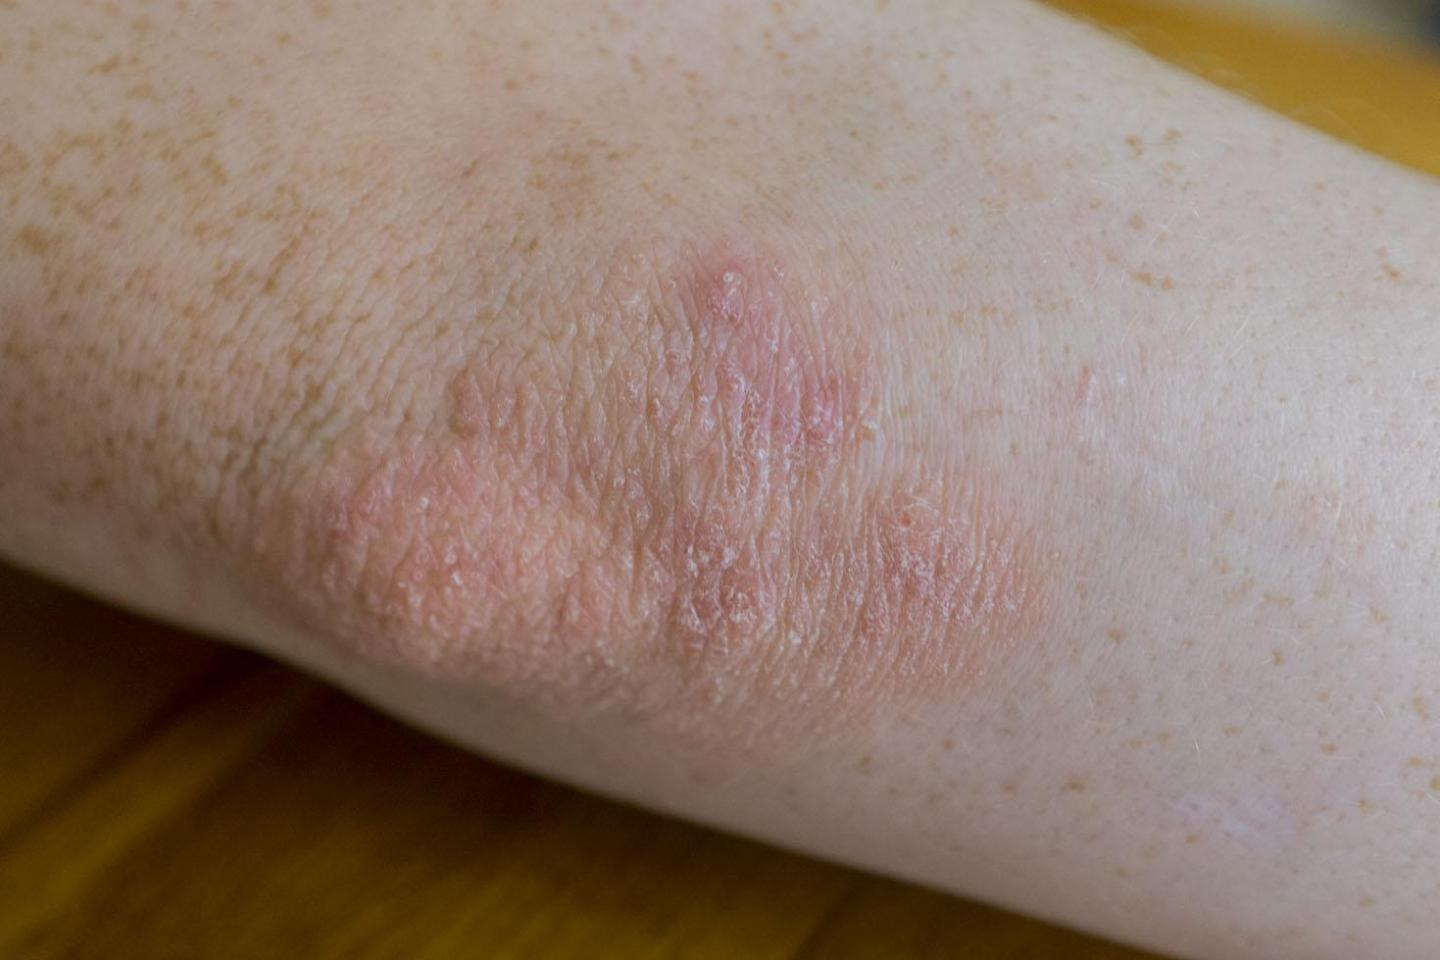 psoriasis. on an elbow